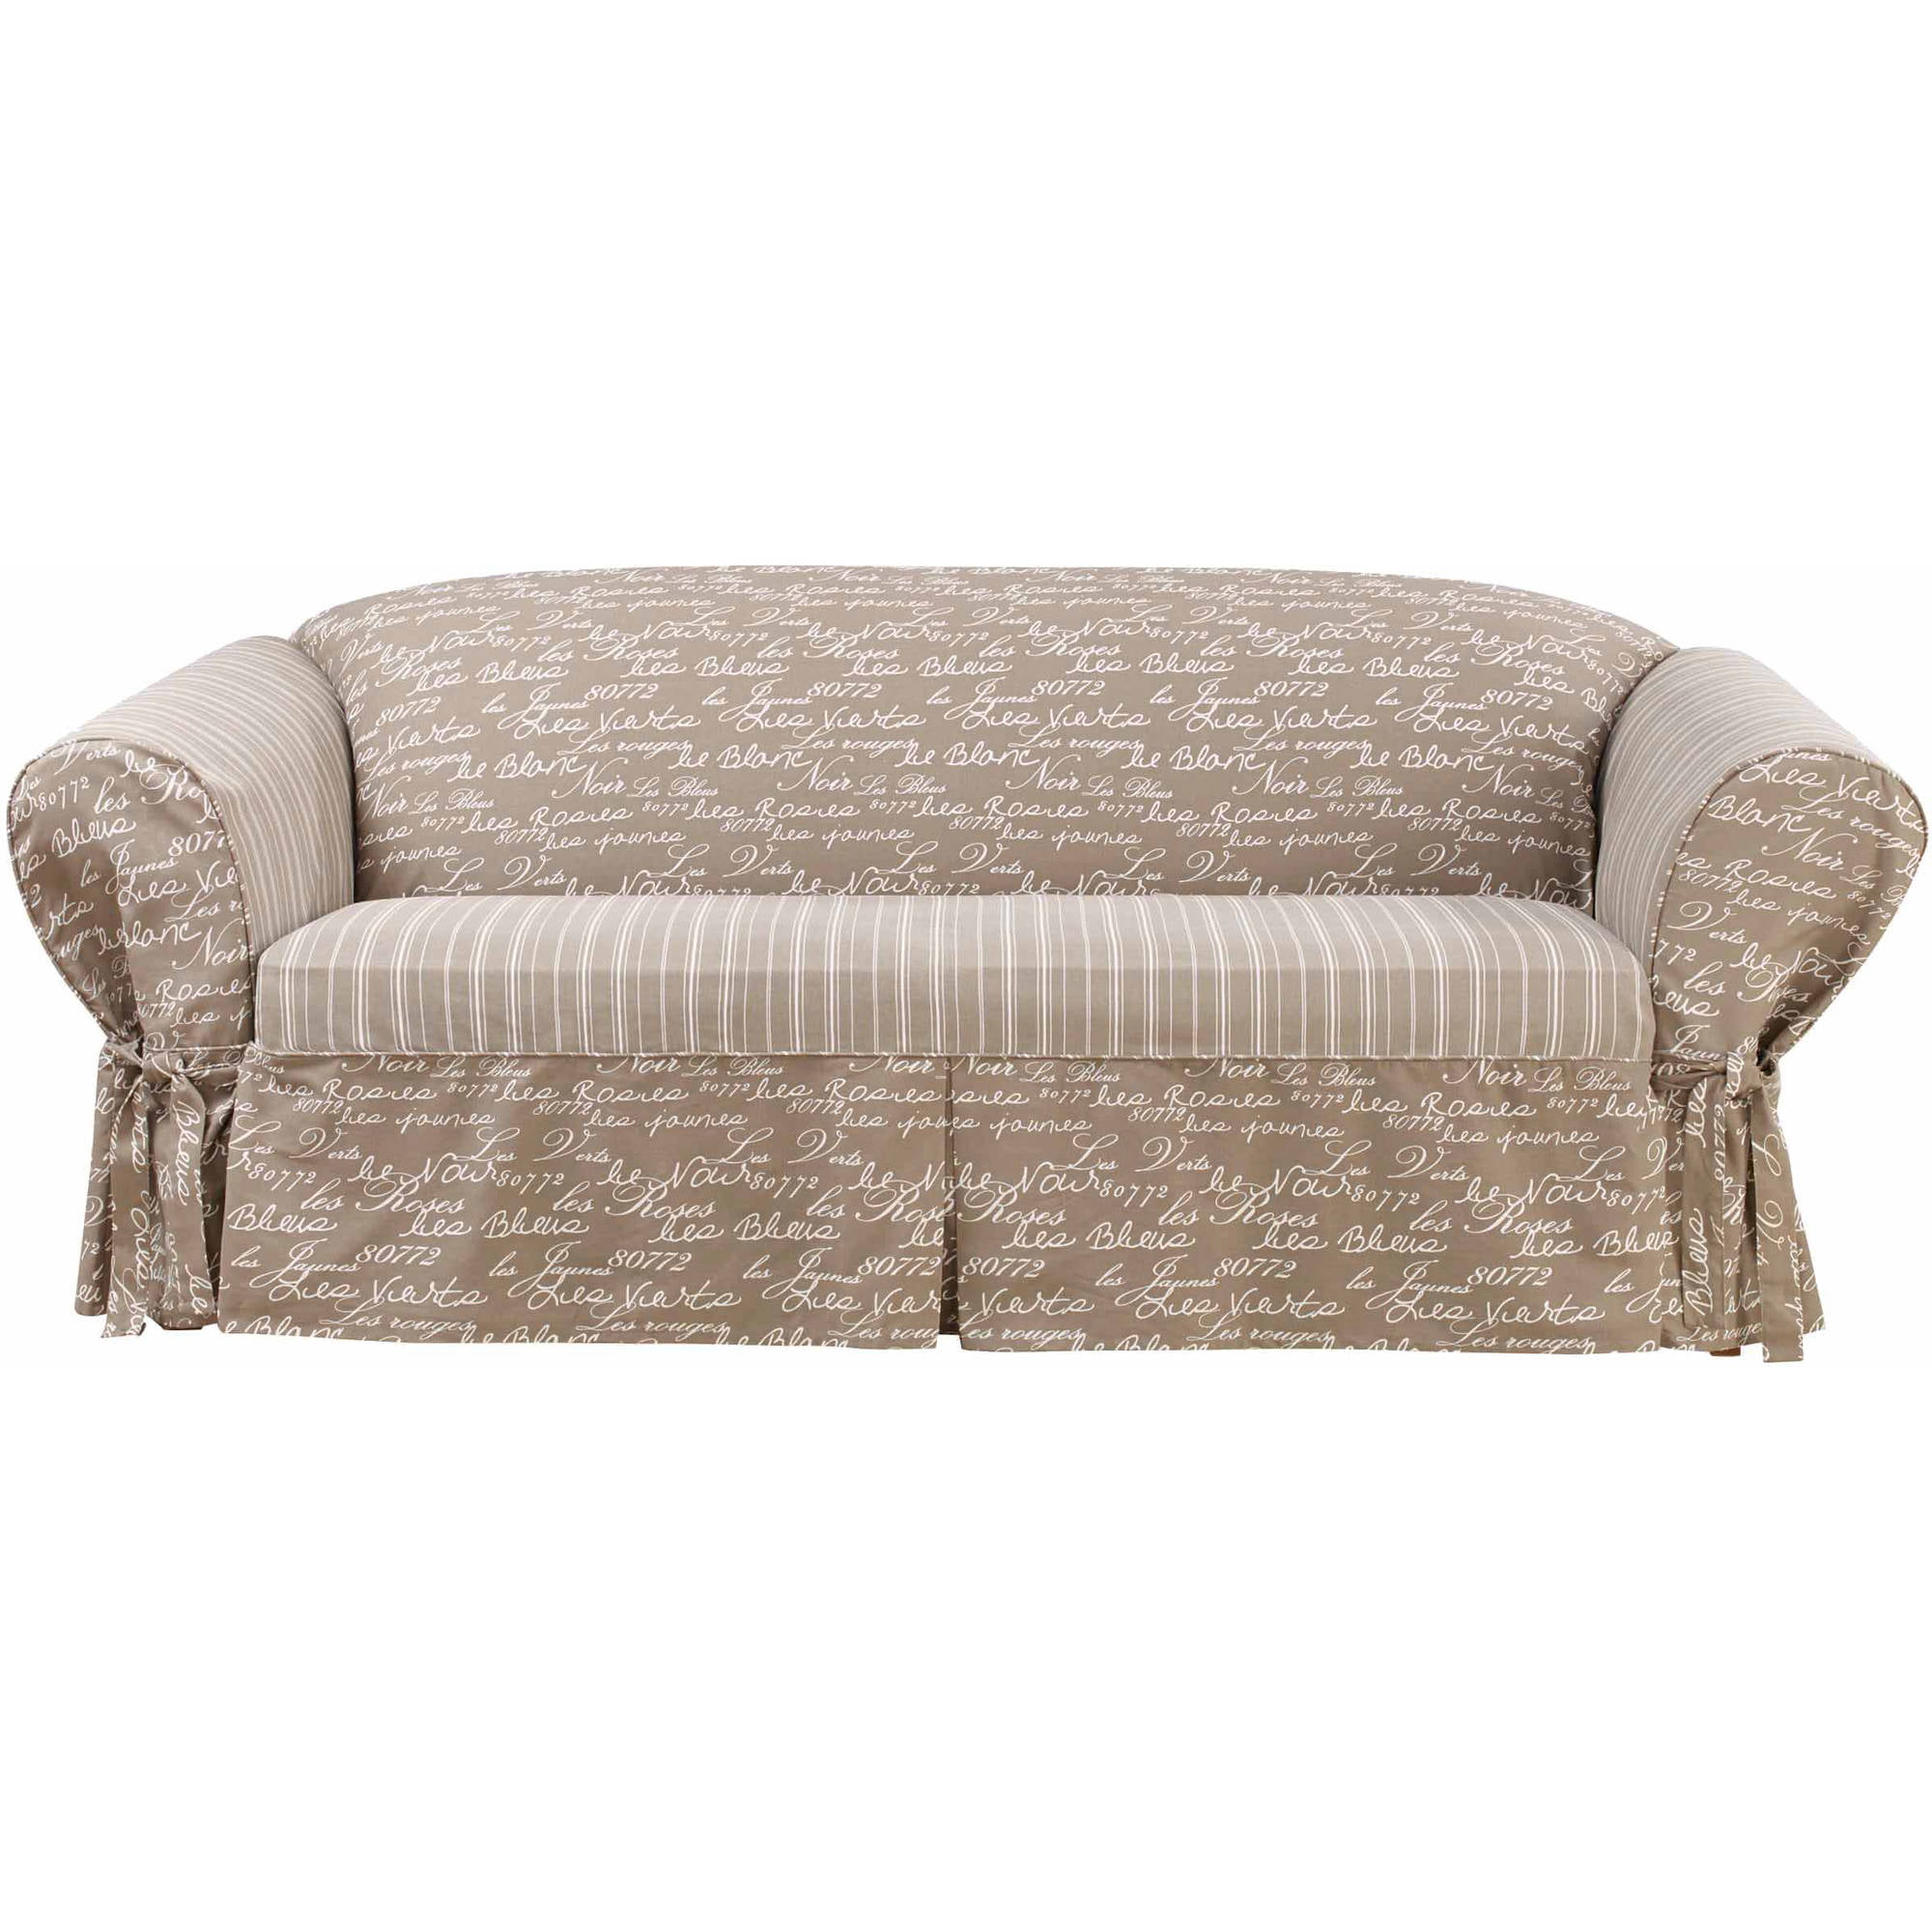 inviting seat furniture slipcovers interior recliner stretch size sofas white chairs cushion couch piece of motif couches slipc slipcover lummy fit sure cover t sofa stripe fabric floral pique ideas design wells for as reclining covers suede kohls several full grey in